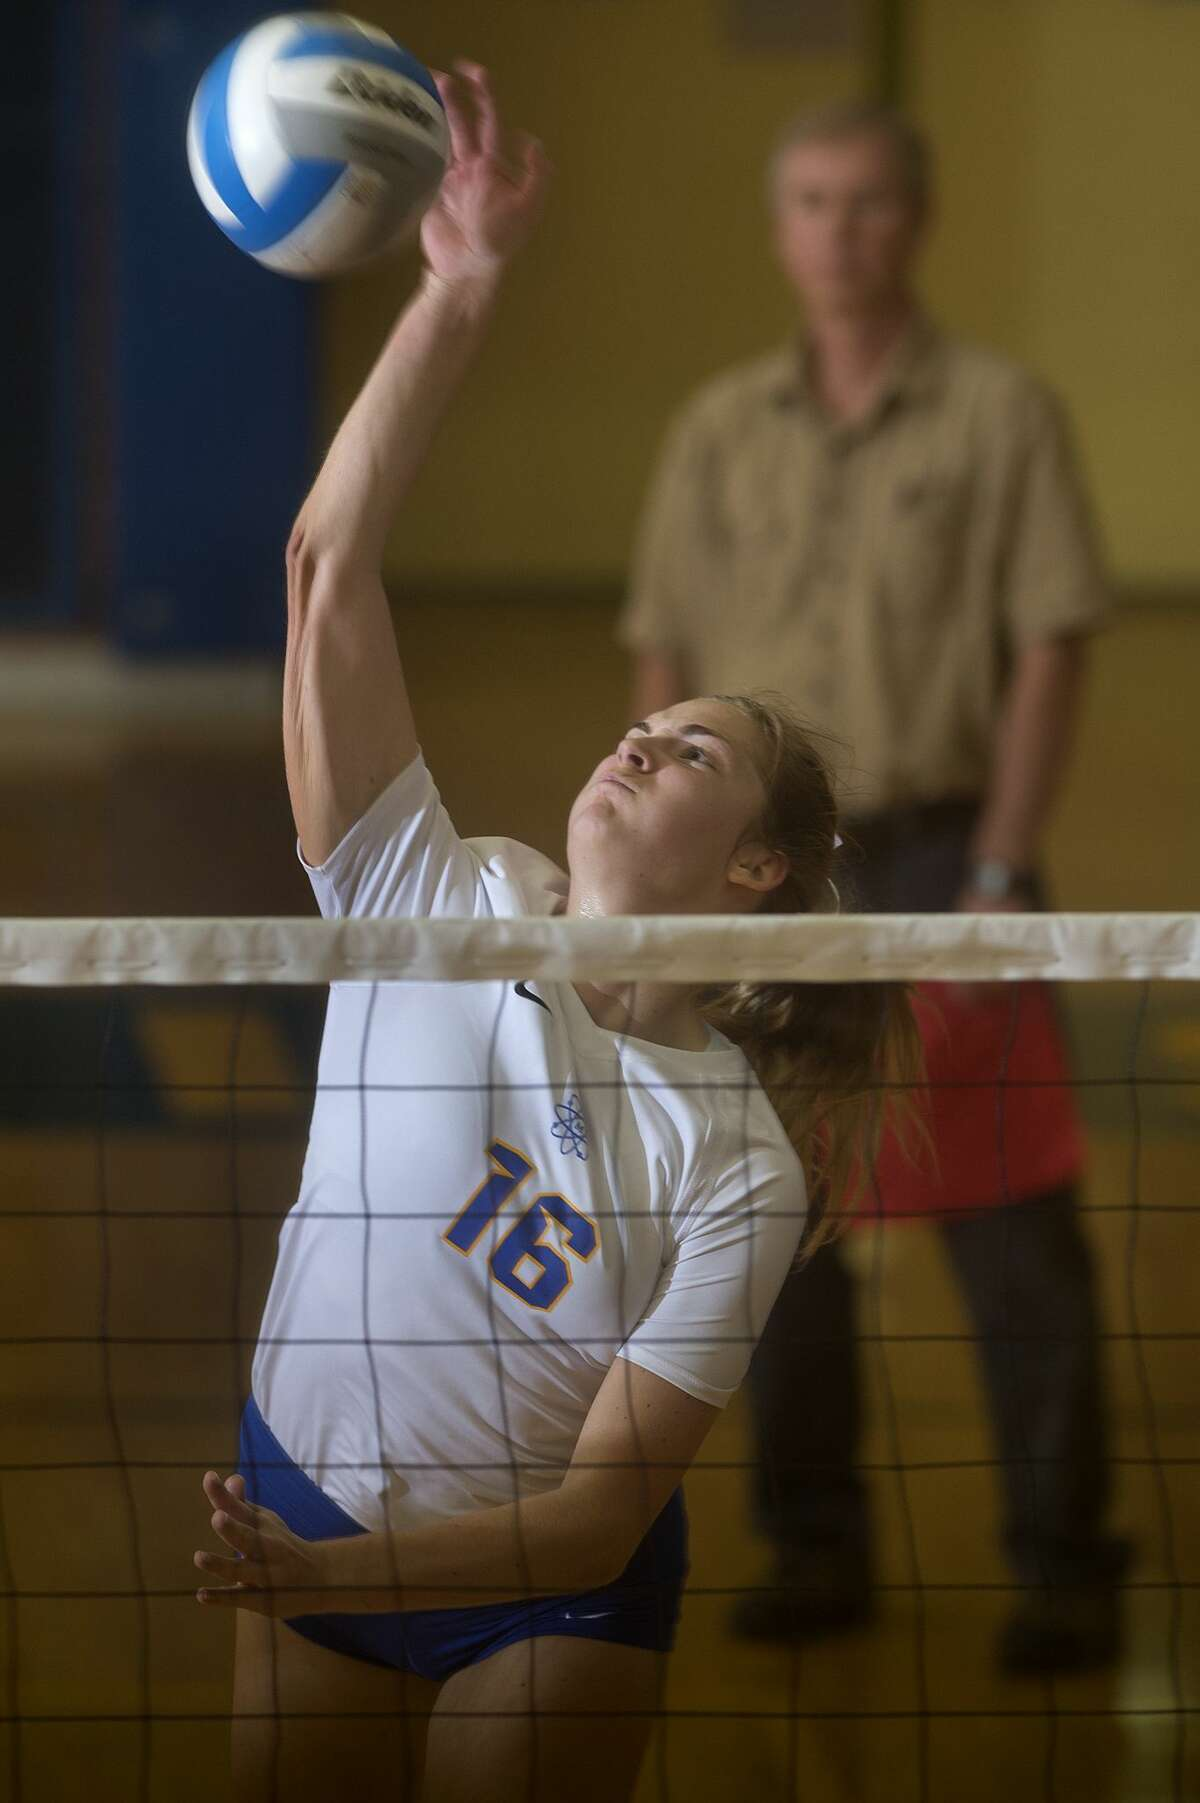 Midland High's Ellie Jensen spikes the ball in the second set of the Tuesday evening match against Heritage High School. The Chemics came back to win the win the match after losing the first two sets 24-26, 21-25, 25-17, 25-18, 15-7.